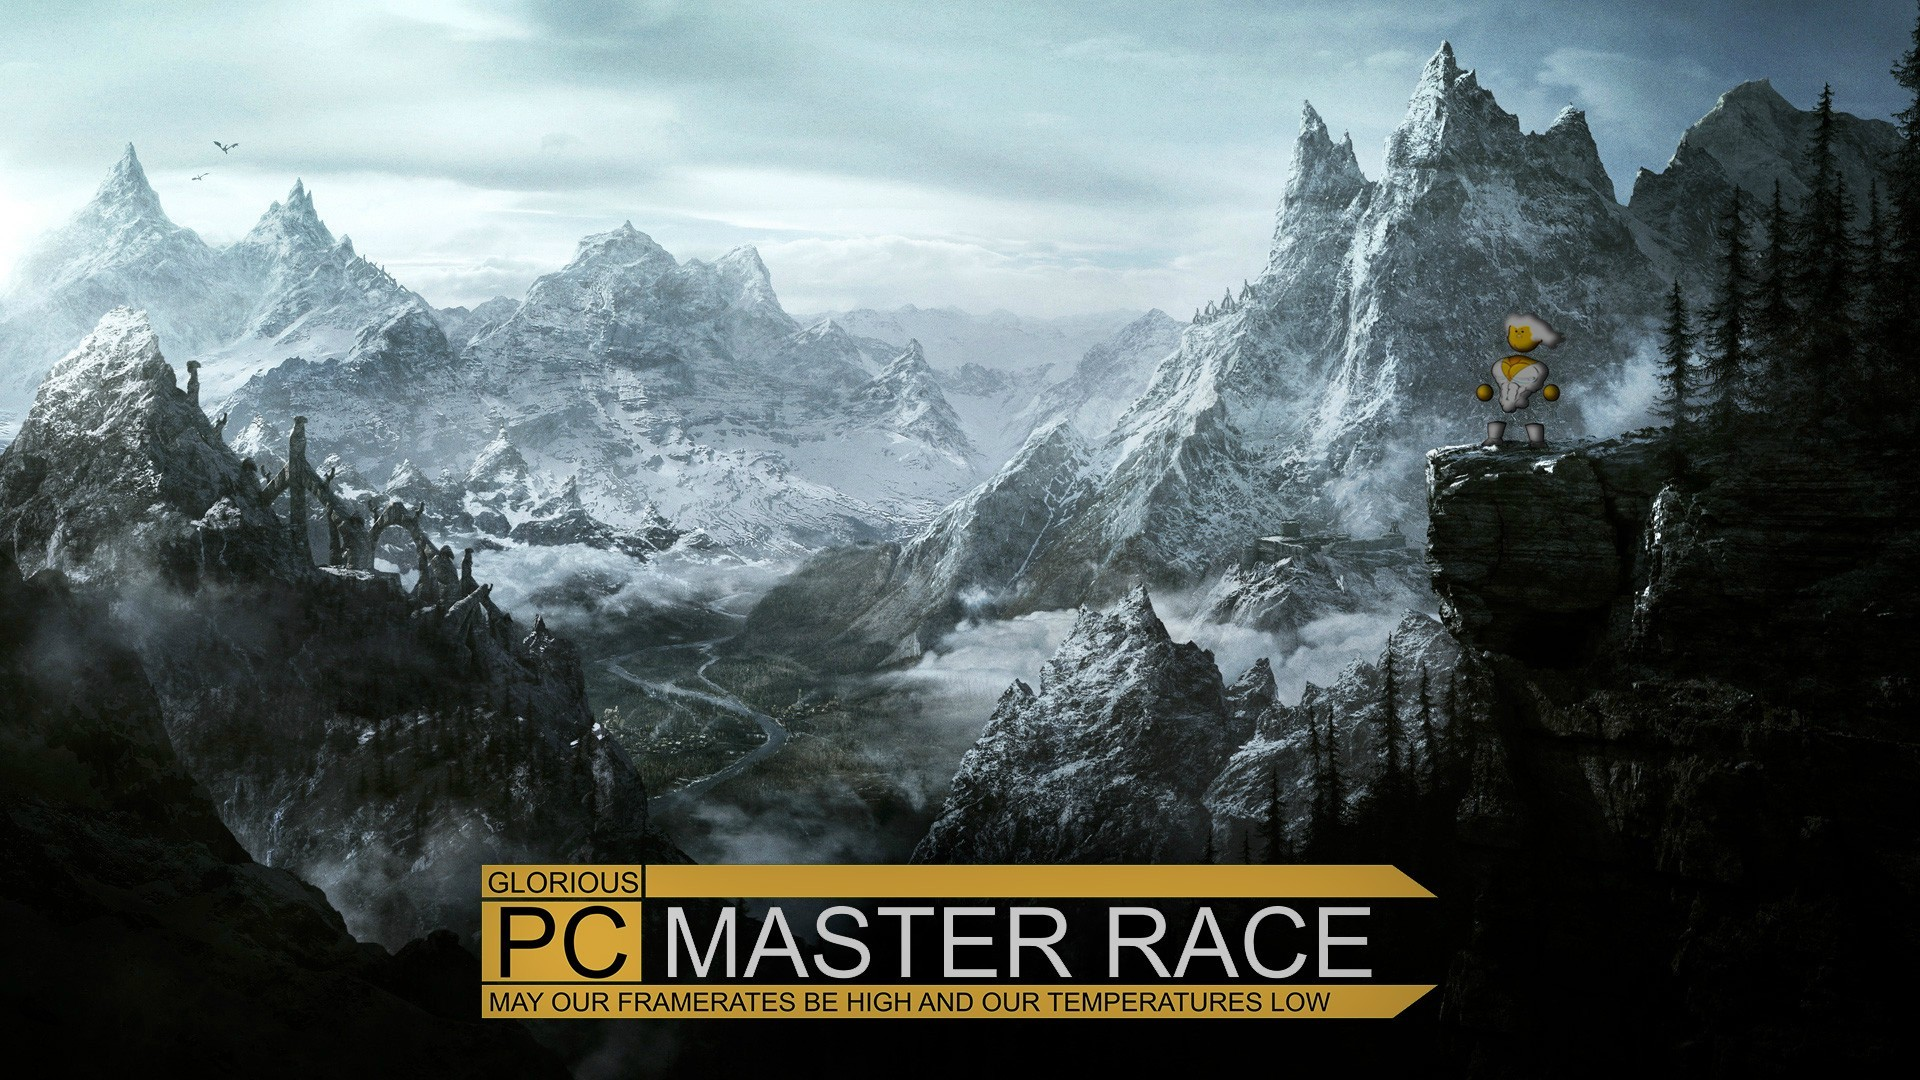 General PC gaming PC Master Race